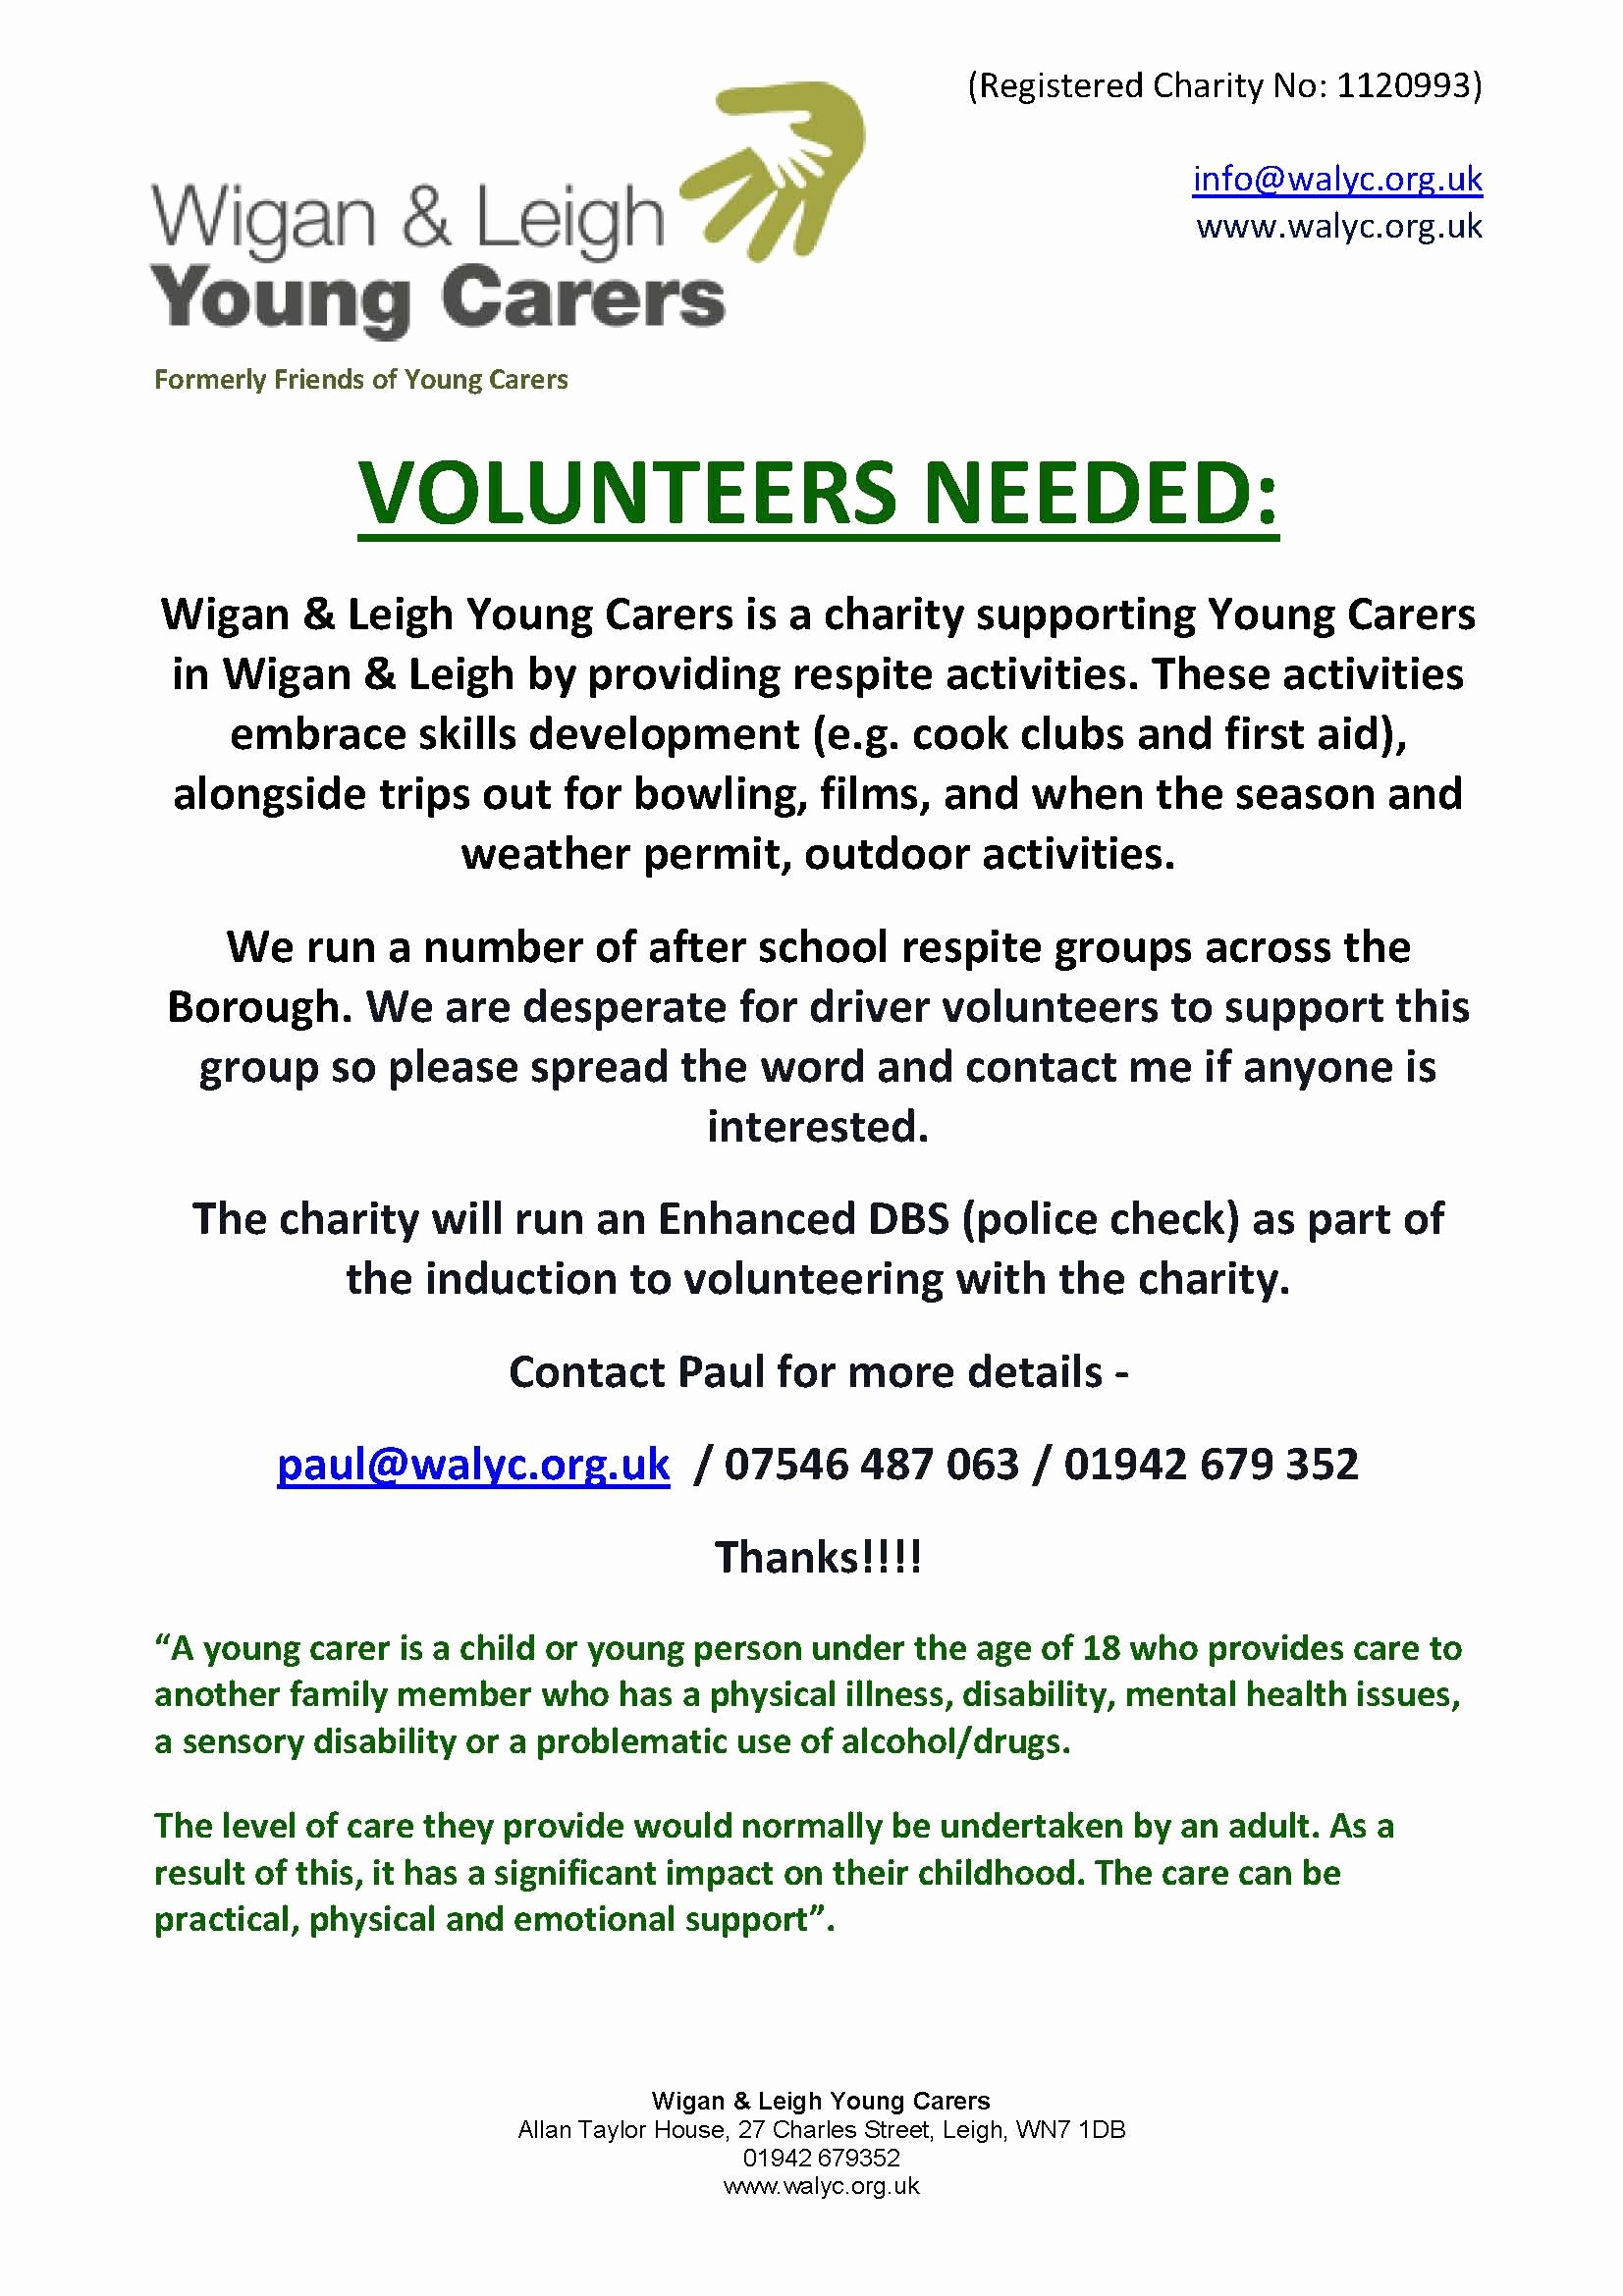 Call for Volunteers Template New Call for Volunteers